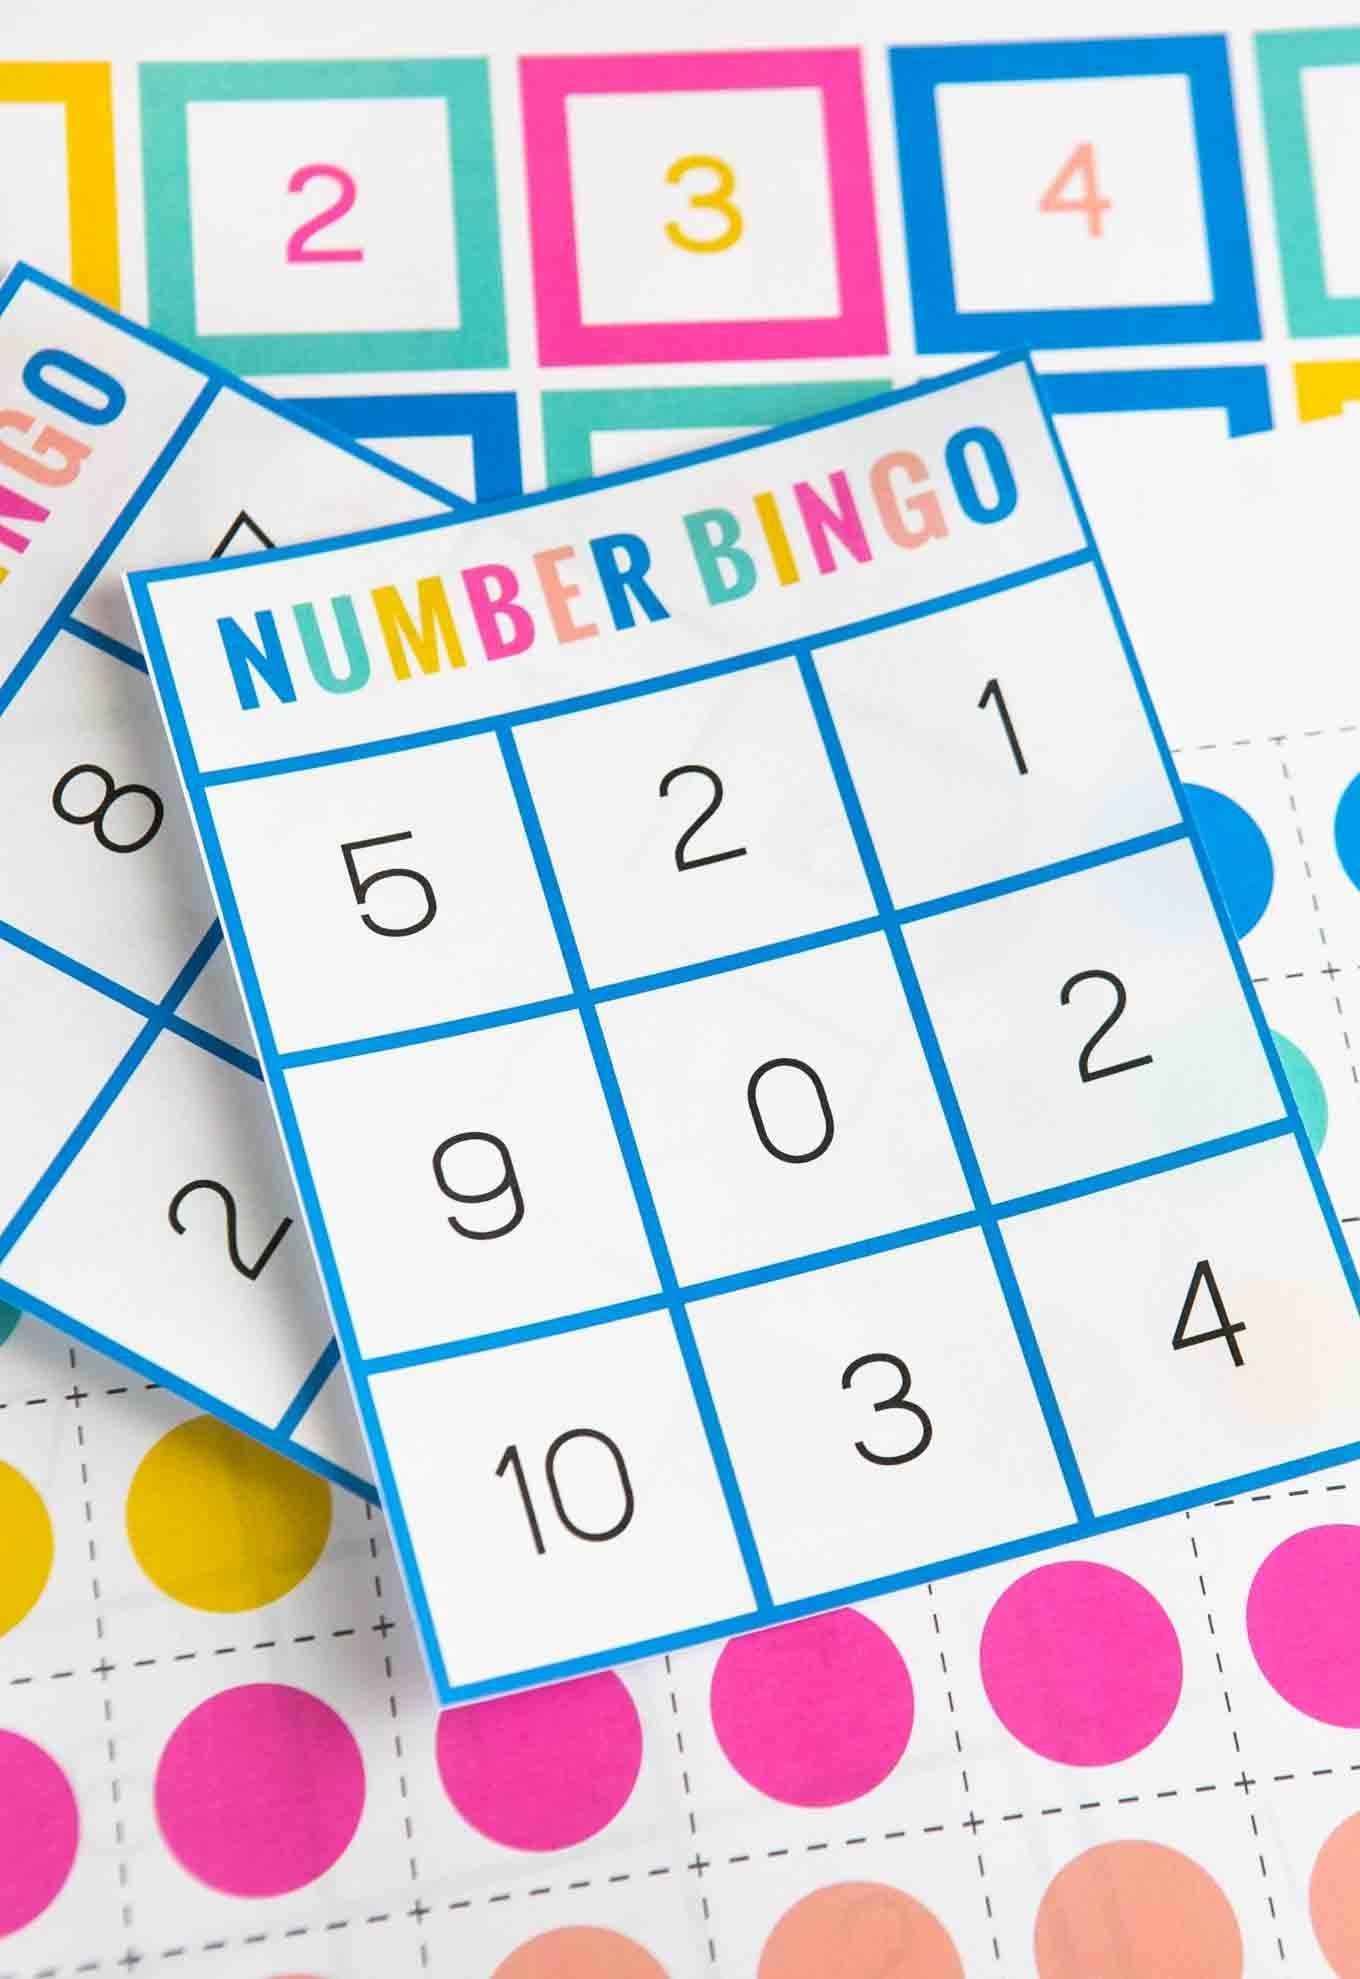 Colorful Number Bingo Card With Images